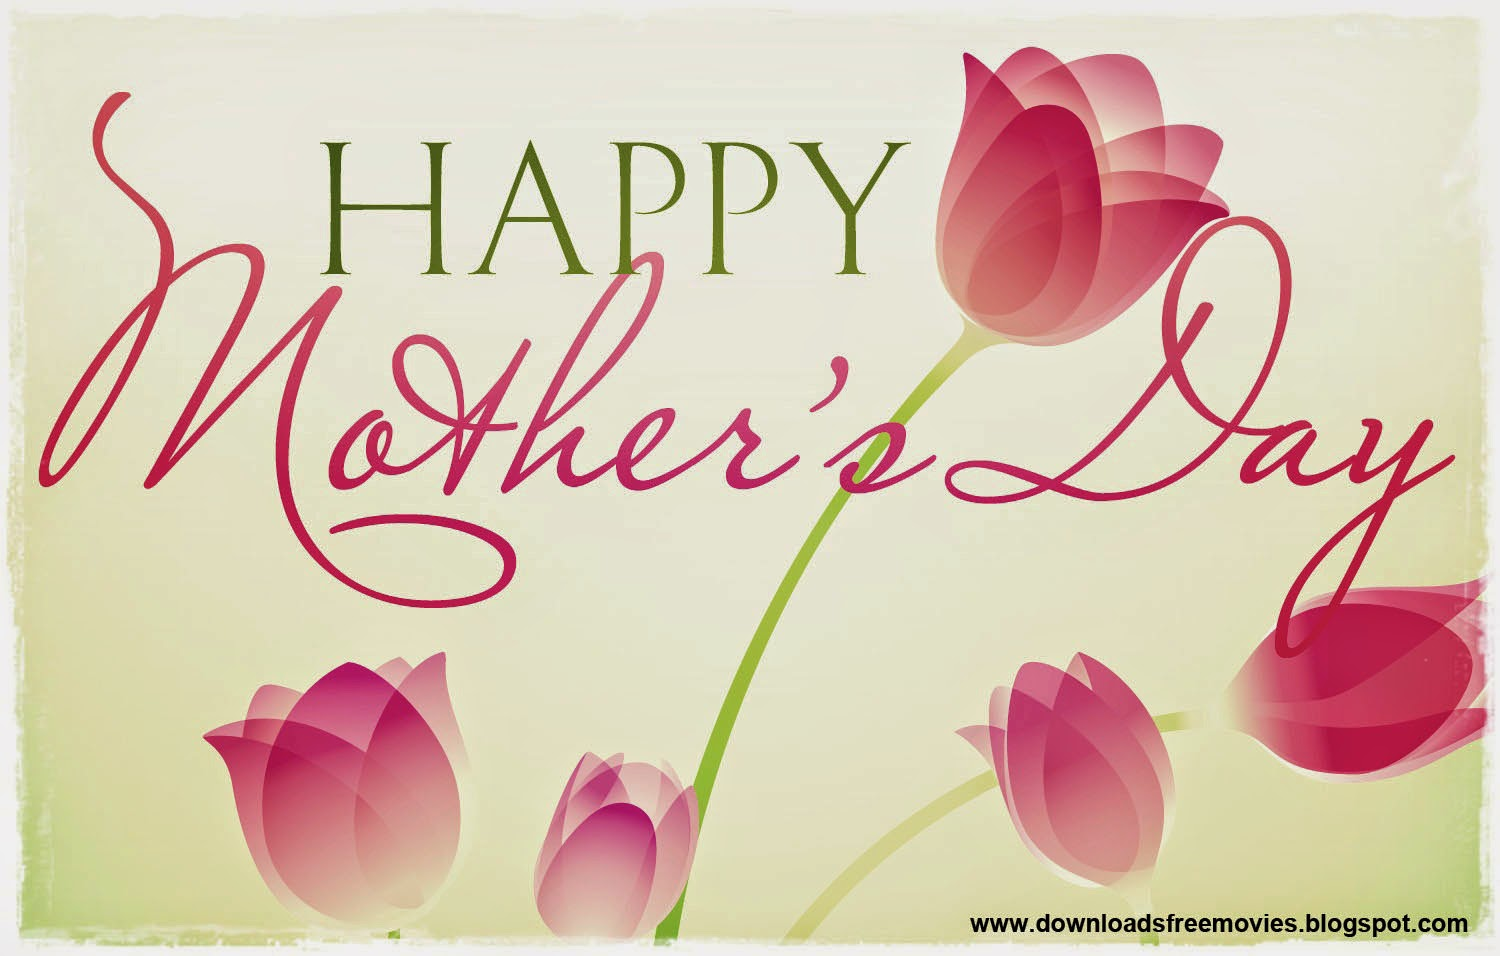 Happy mothers day 2015 images fb quotes pictures songs for Mothers day quotes and sayings